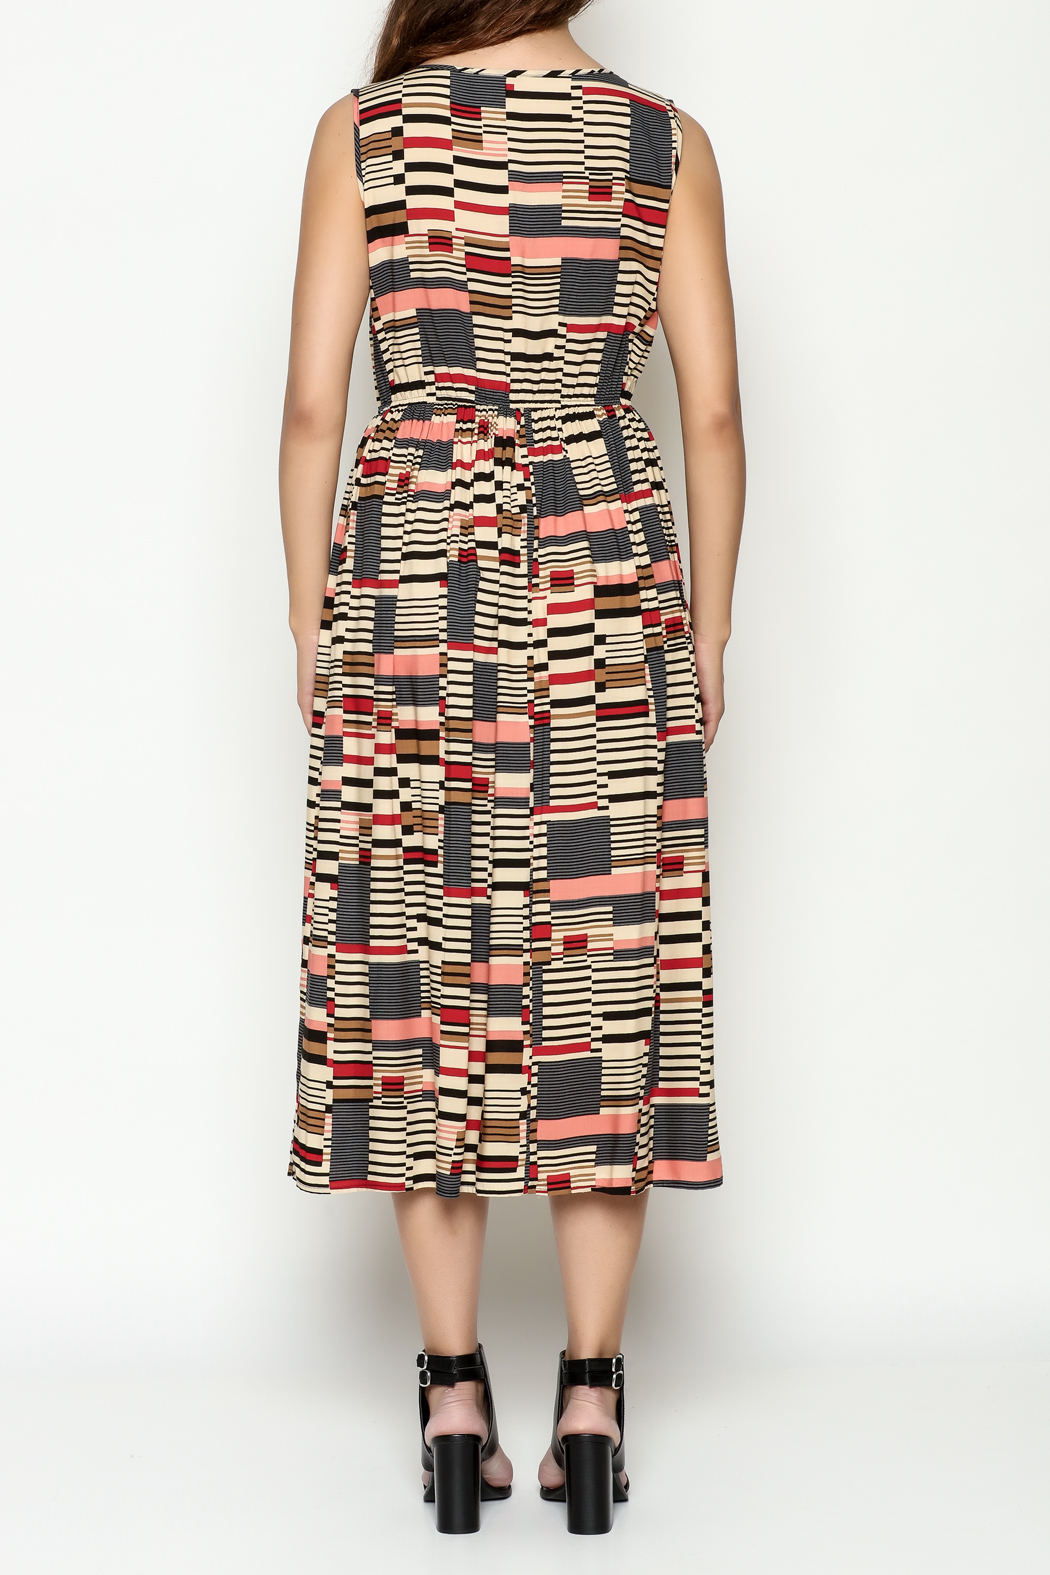 THINK CLOSET Abstract Maxi Dress - Back Cropped Image